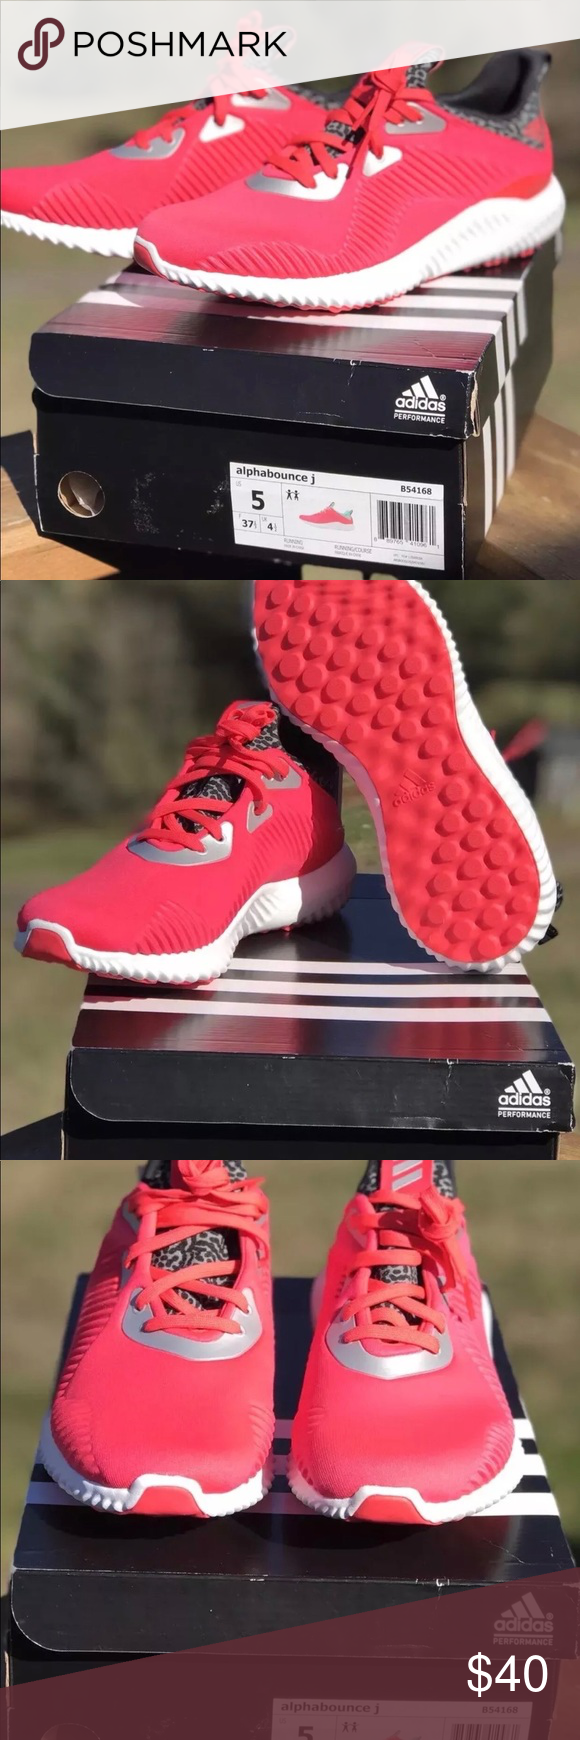 f226a0664ff2d Adidas Alphabounce Youth Running Shoe Size